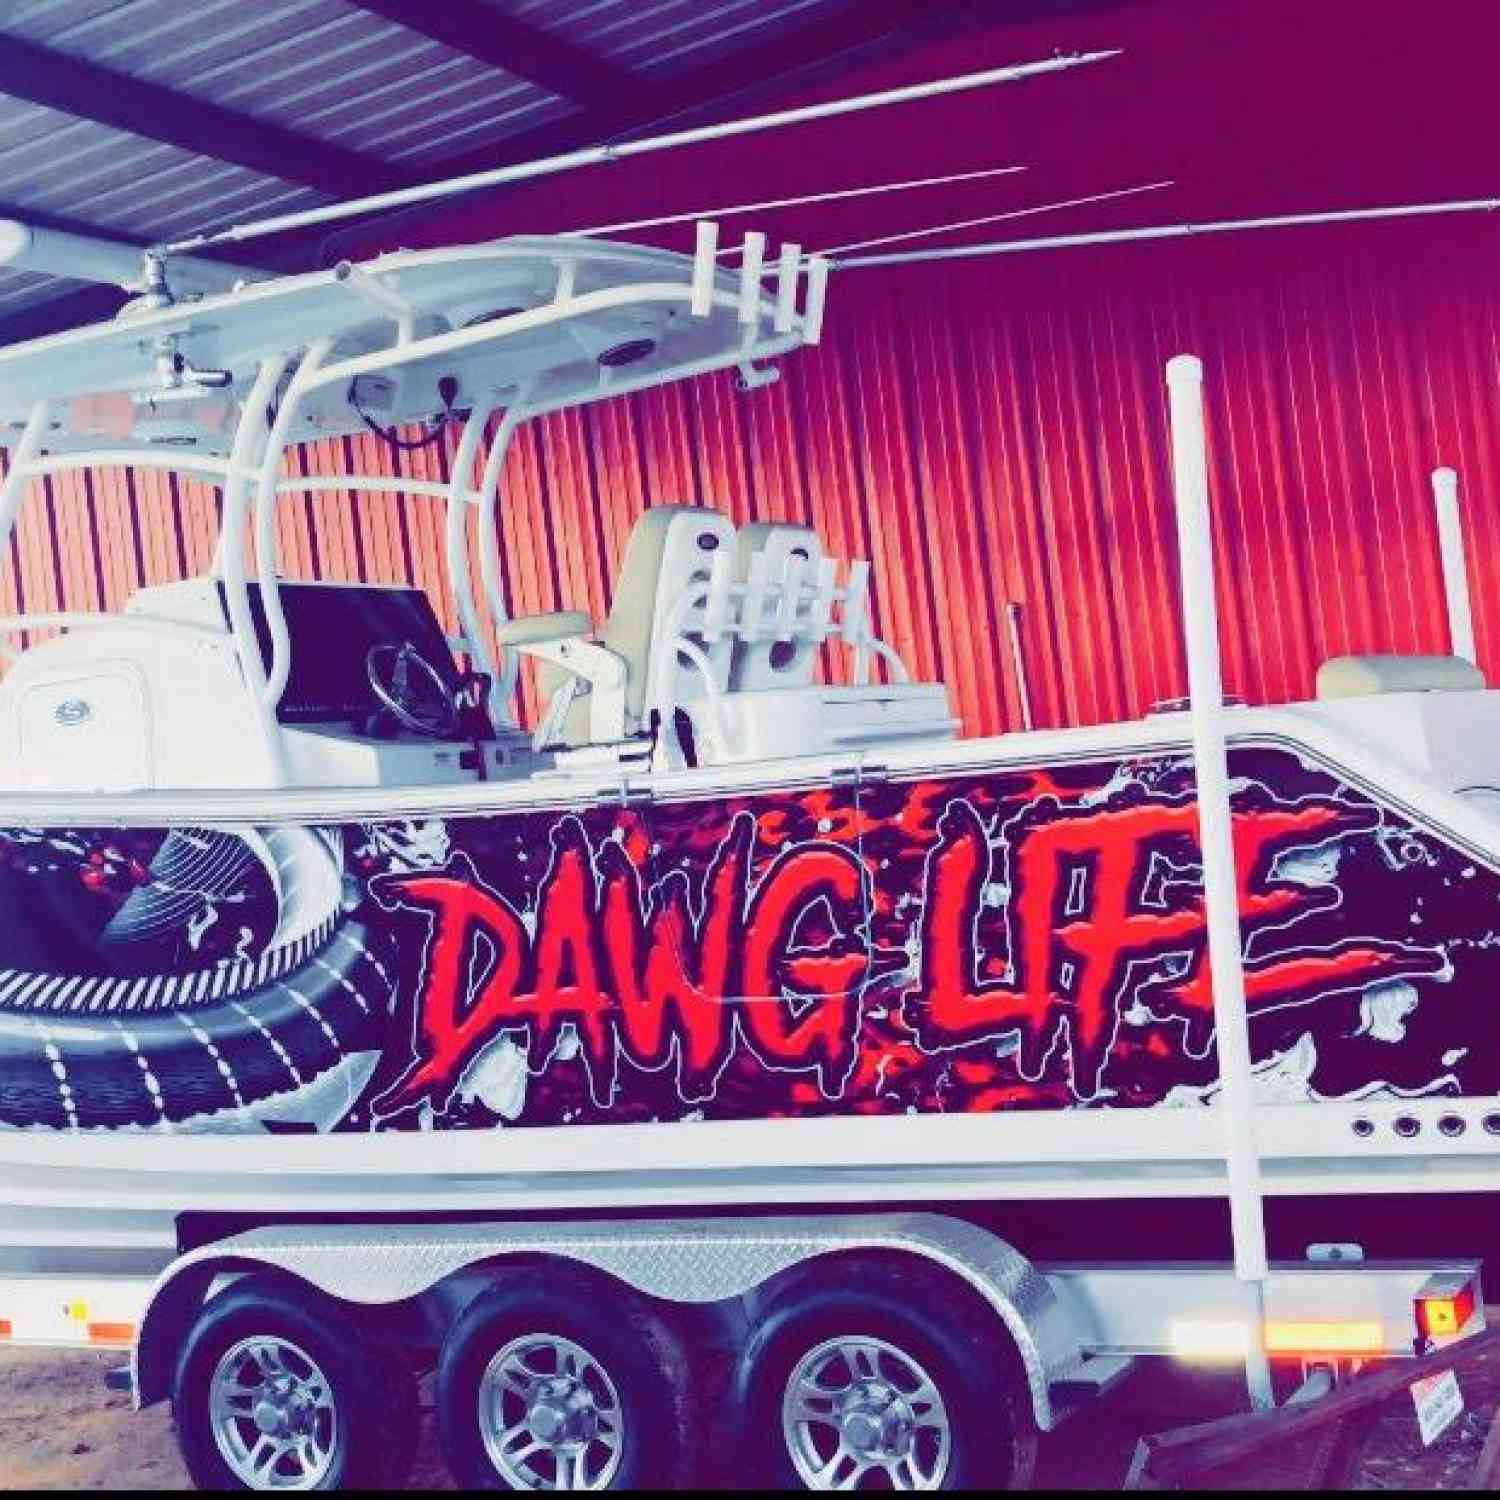 Title: DAWG LIFE - On board their Sportsman Open 312 Center Console - Location: Statesboro, ga. Participating in the Photo Contest #SportsmanJune2018